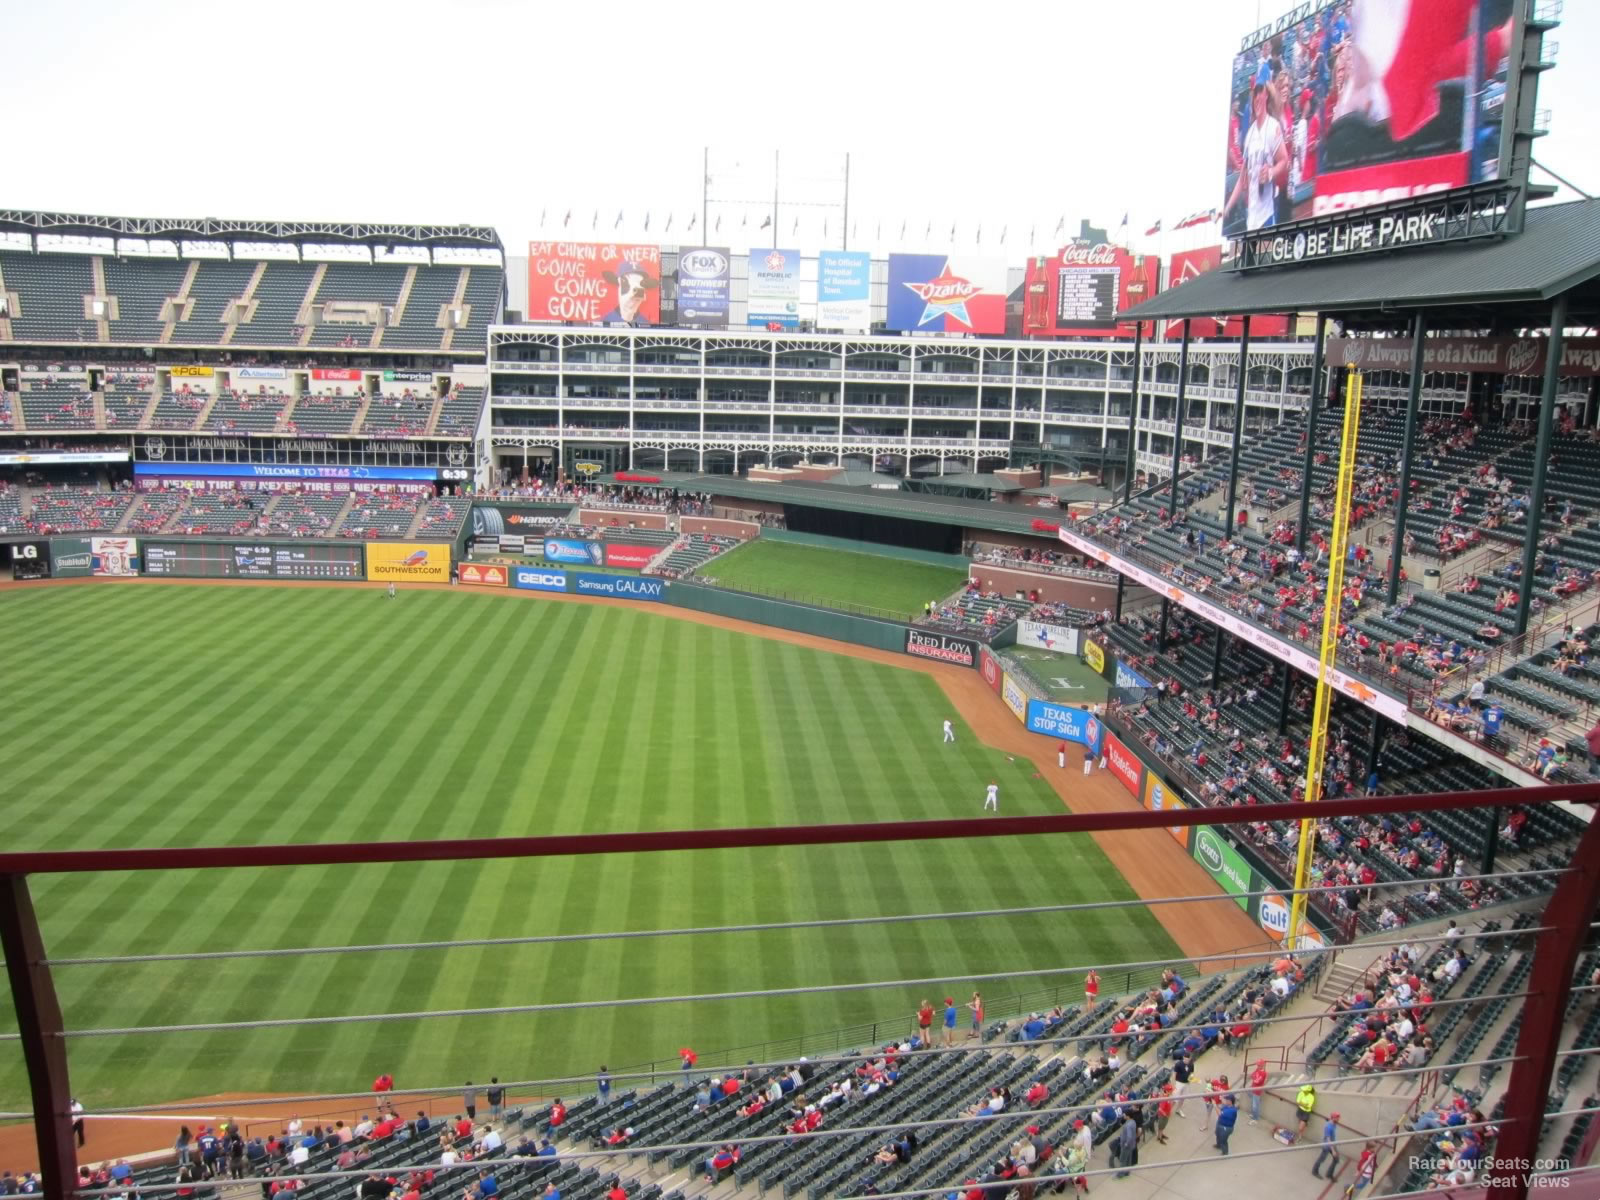 Third Row Seating >> Globe Life Park Section 338 - RateYourSeats.com